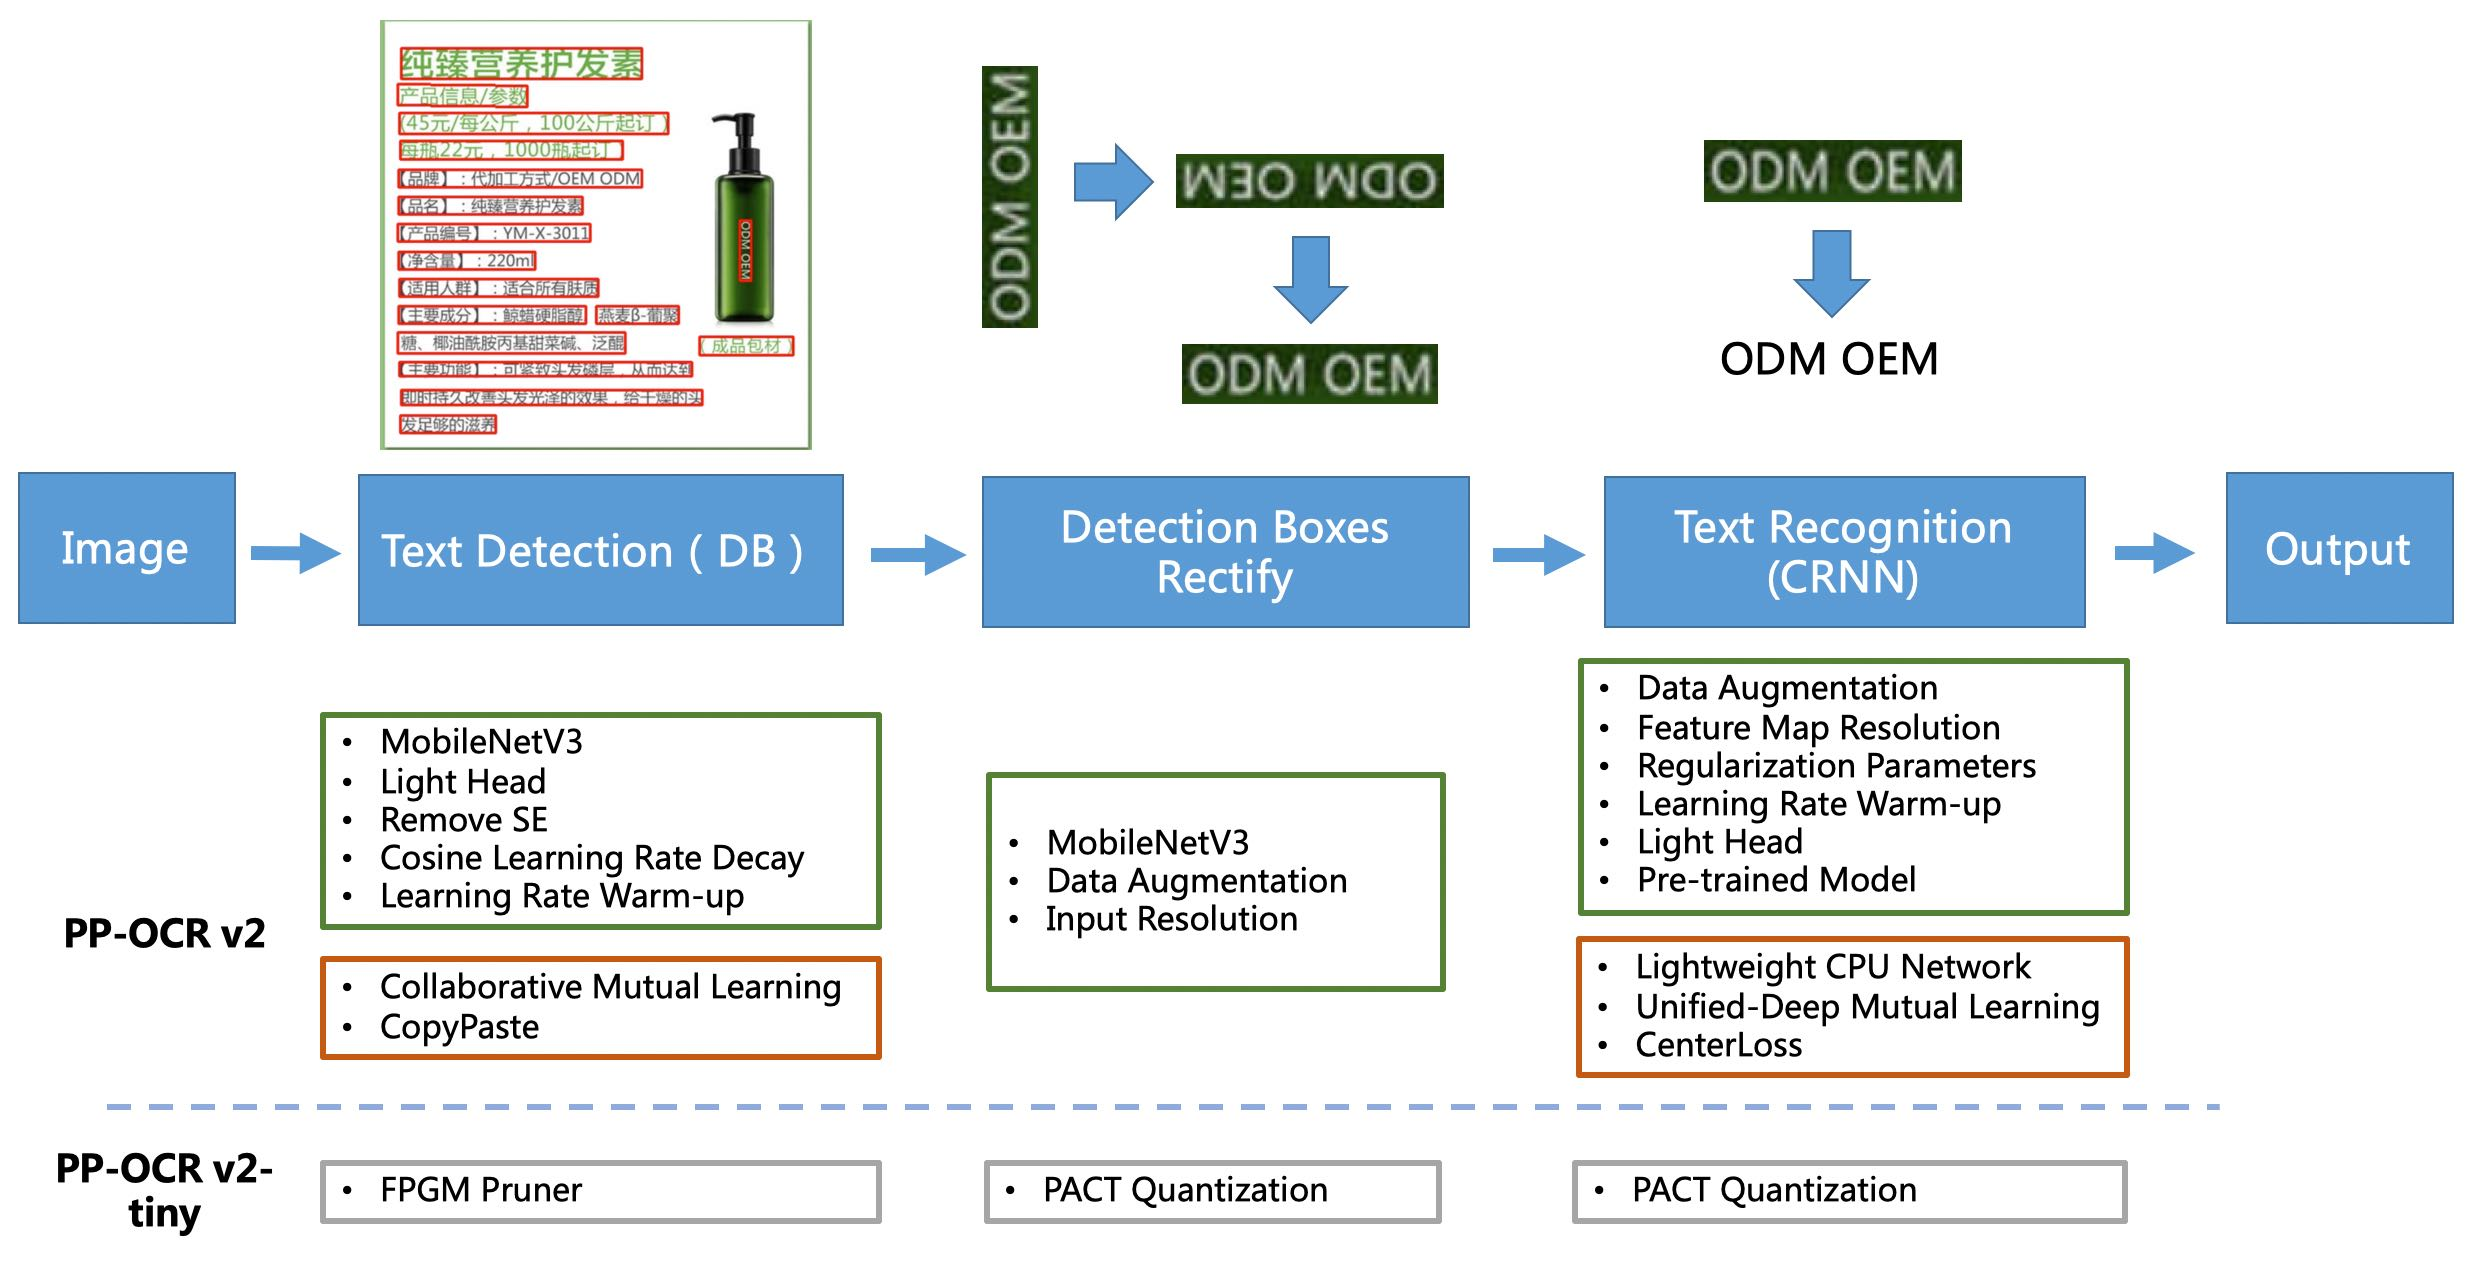 The framework of the proposed PP-OCRv2. The strategies in the green boxes are the same as PP-OCR. The strategies in the orange boxes are the newly added ones in the PP-OCRv2. The strategies in the gray boxes will be adopted by the PP-OCRv2-tiny in the future.